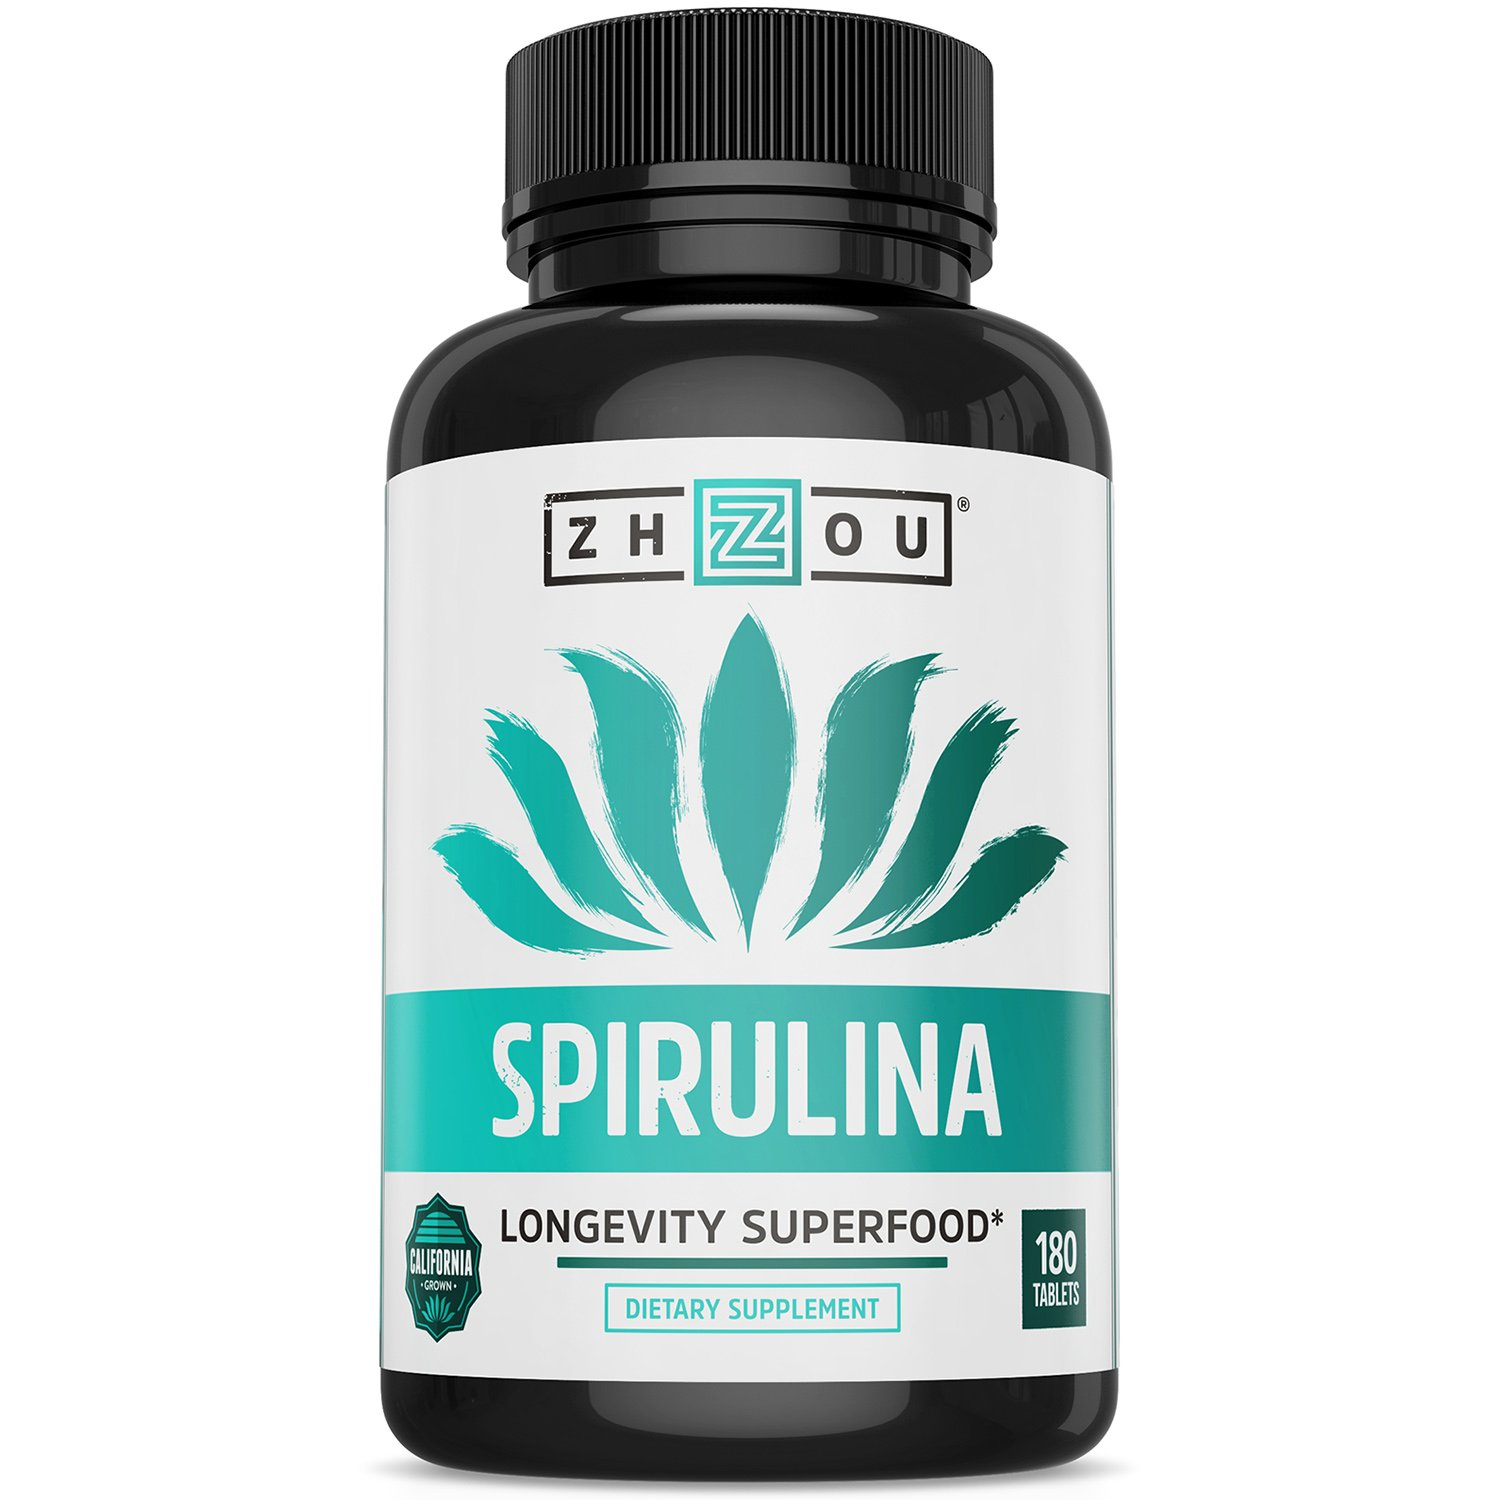 Non-GMO Spirulina Tablets, Highest Quality Spirulina on Earth, Sustainably Grown in California Without Pesticides, 100% Vegetarian & Non-Irradiated, 500mg in Each Small Tablet, 180 Count by Zhou Nutrition